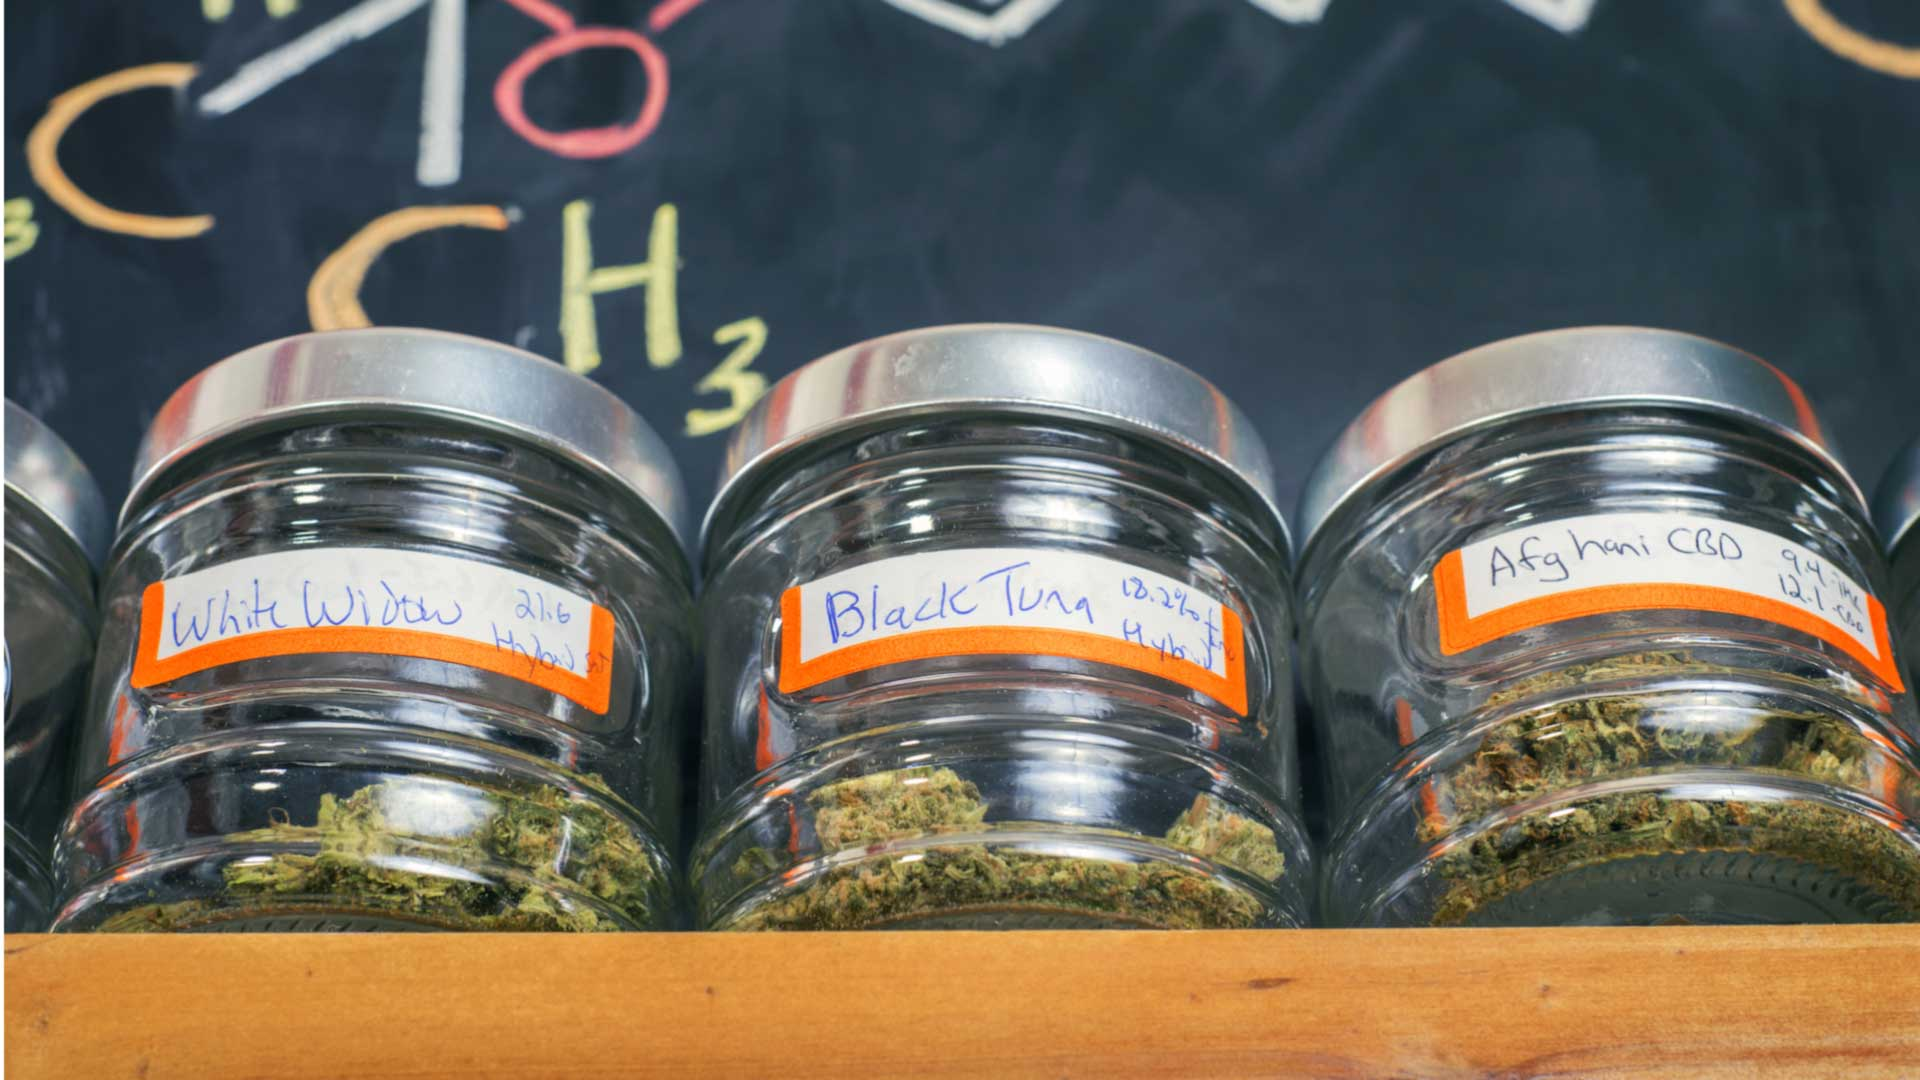 How Not to Treat Your Budtender